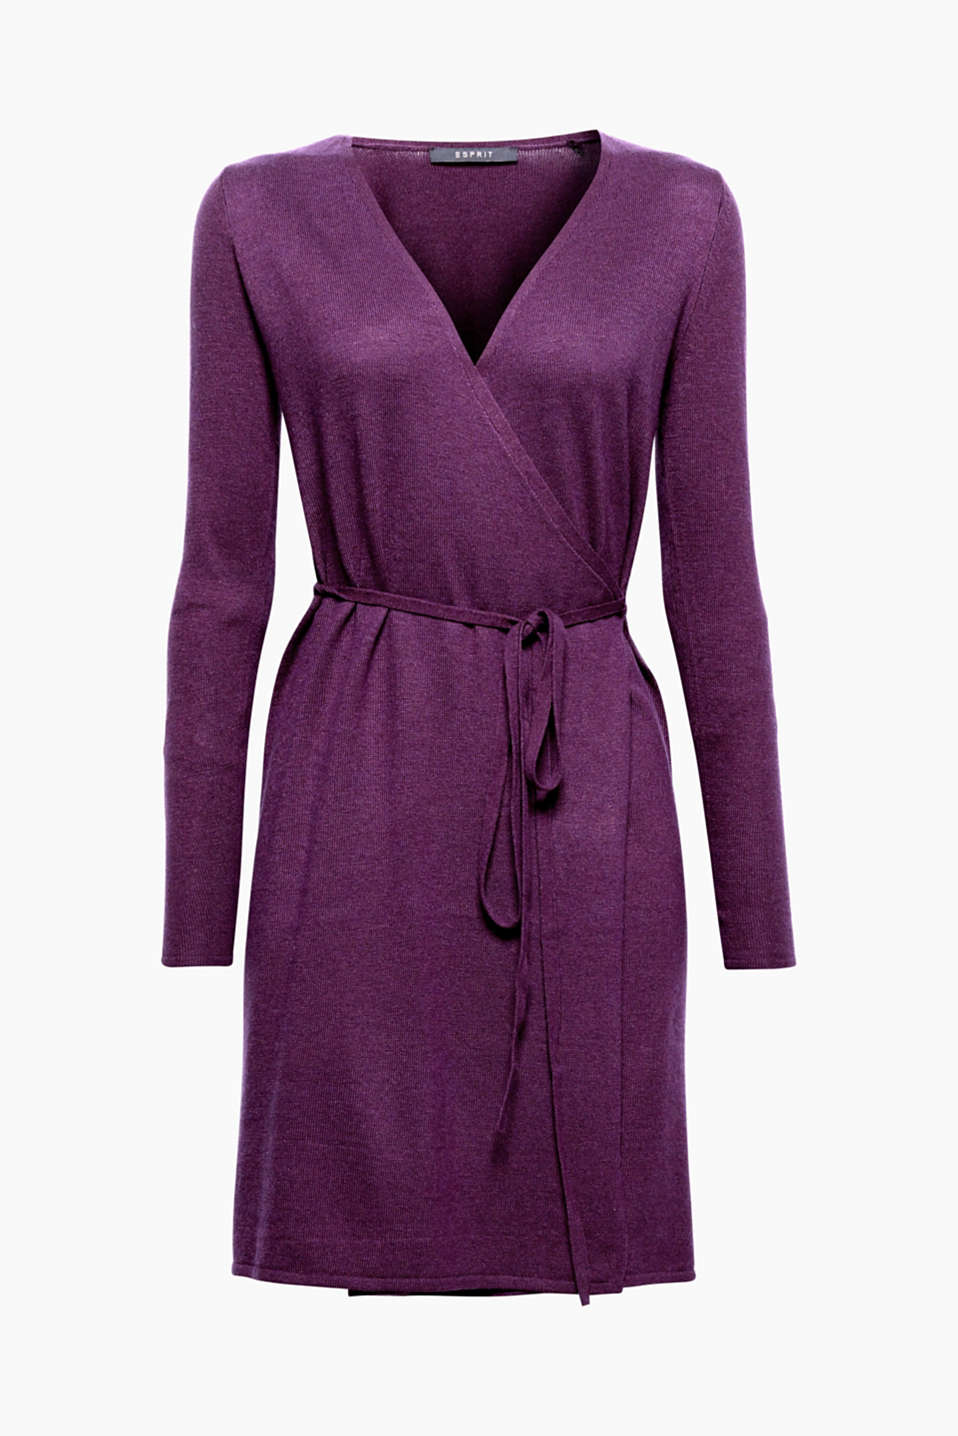 Works as a dress or cardigan: feminine wrap-over dress with a narrow tie-around belt and exquisite cashmere!